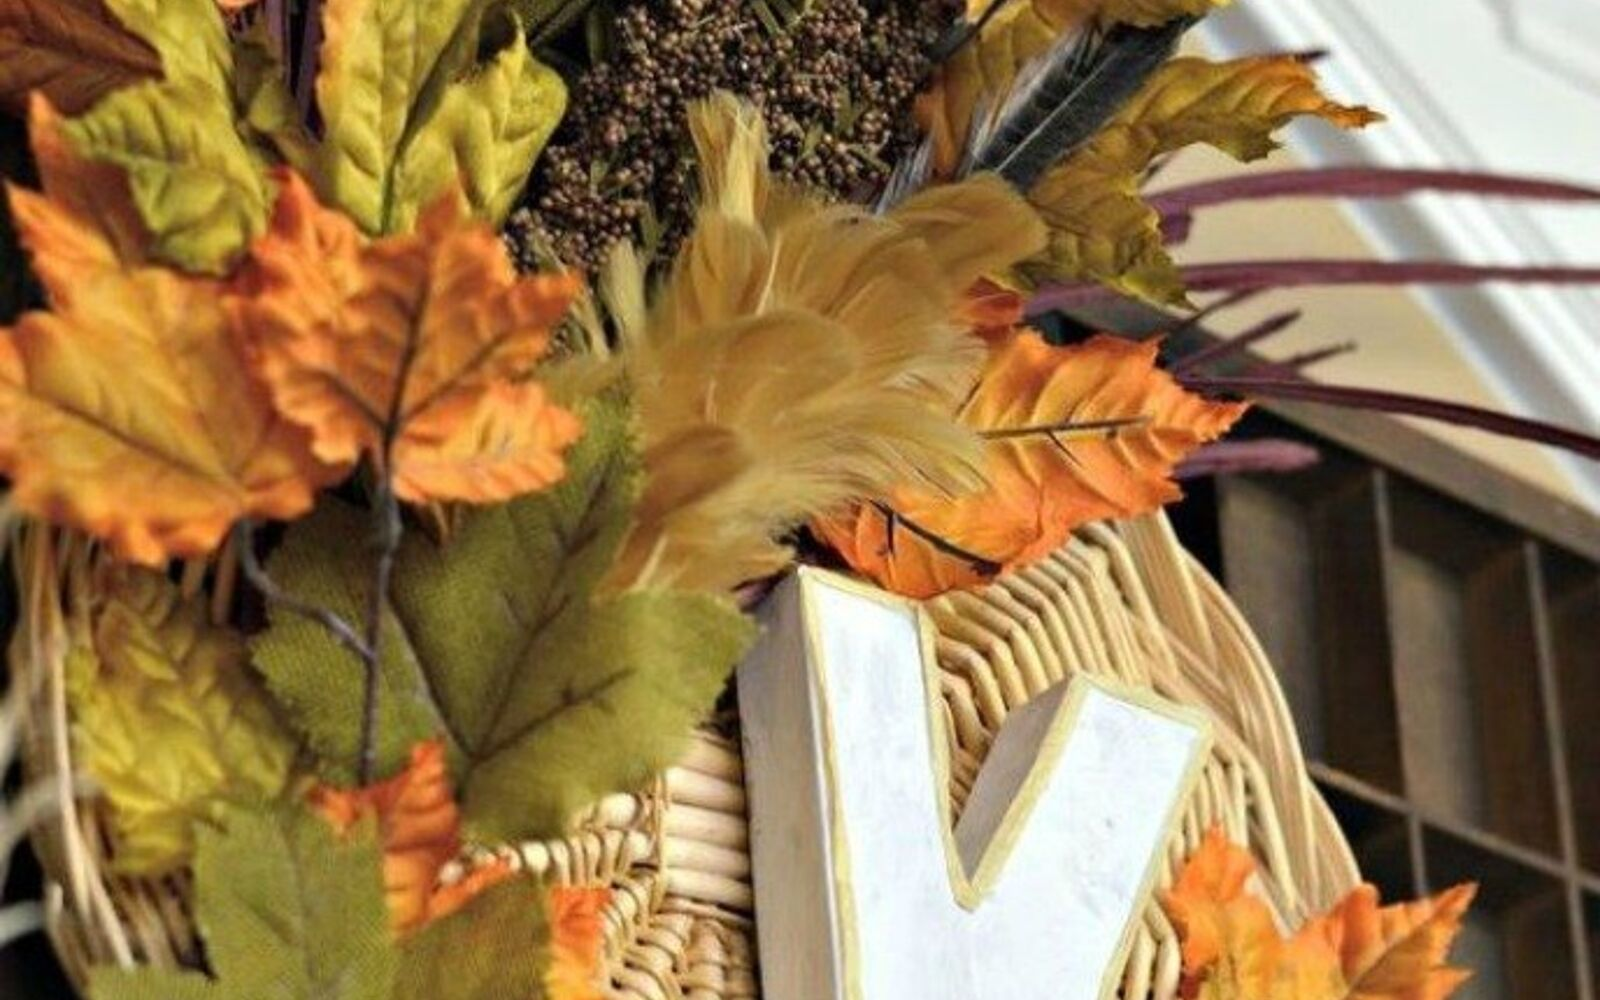 s grab an old basket for these clever ideas, crafts, Upcycle it into a gorgeous wreath